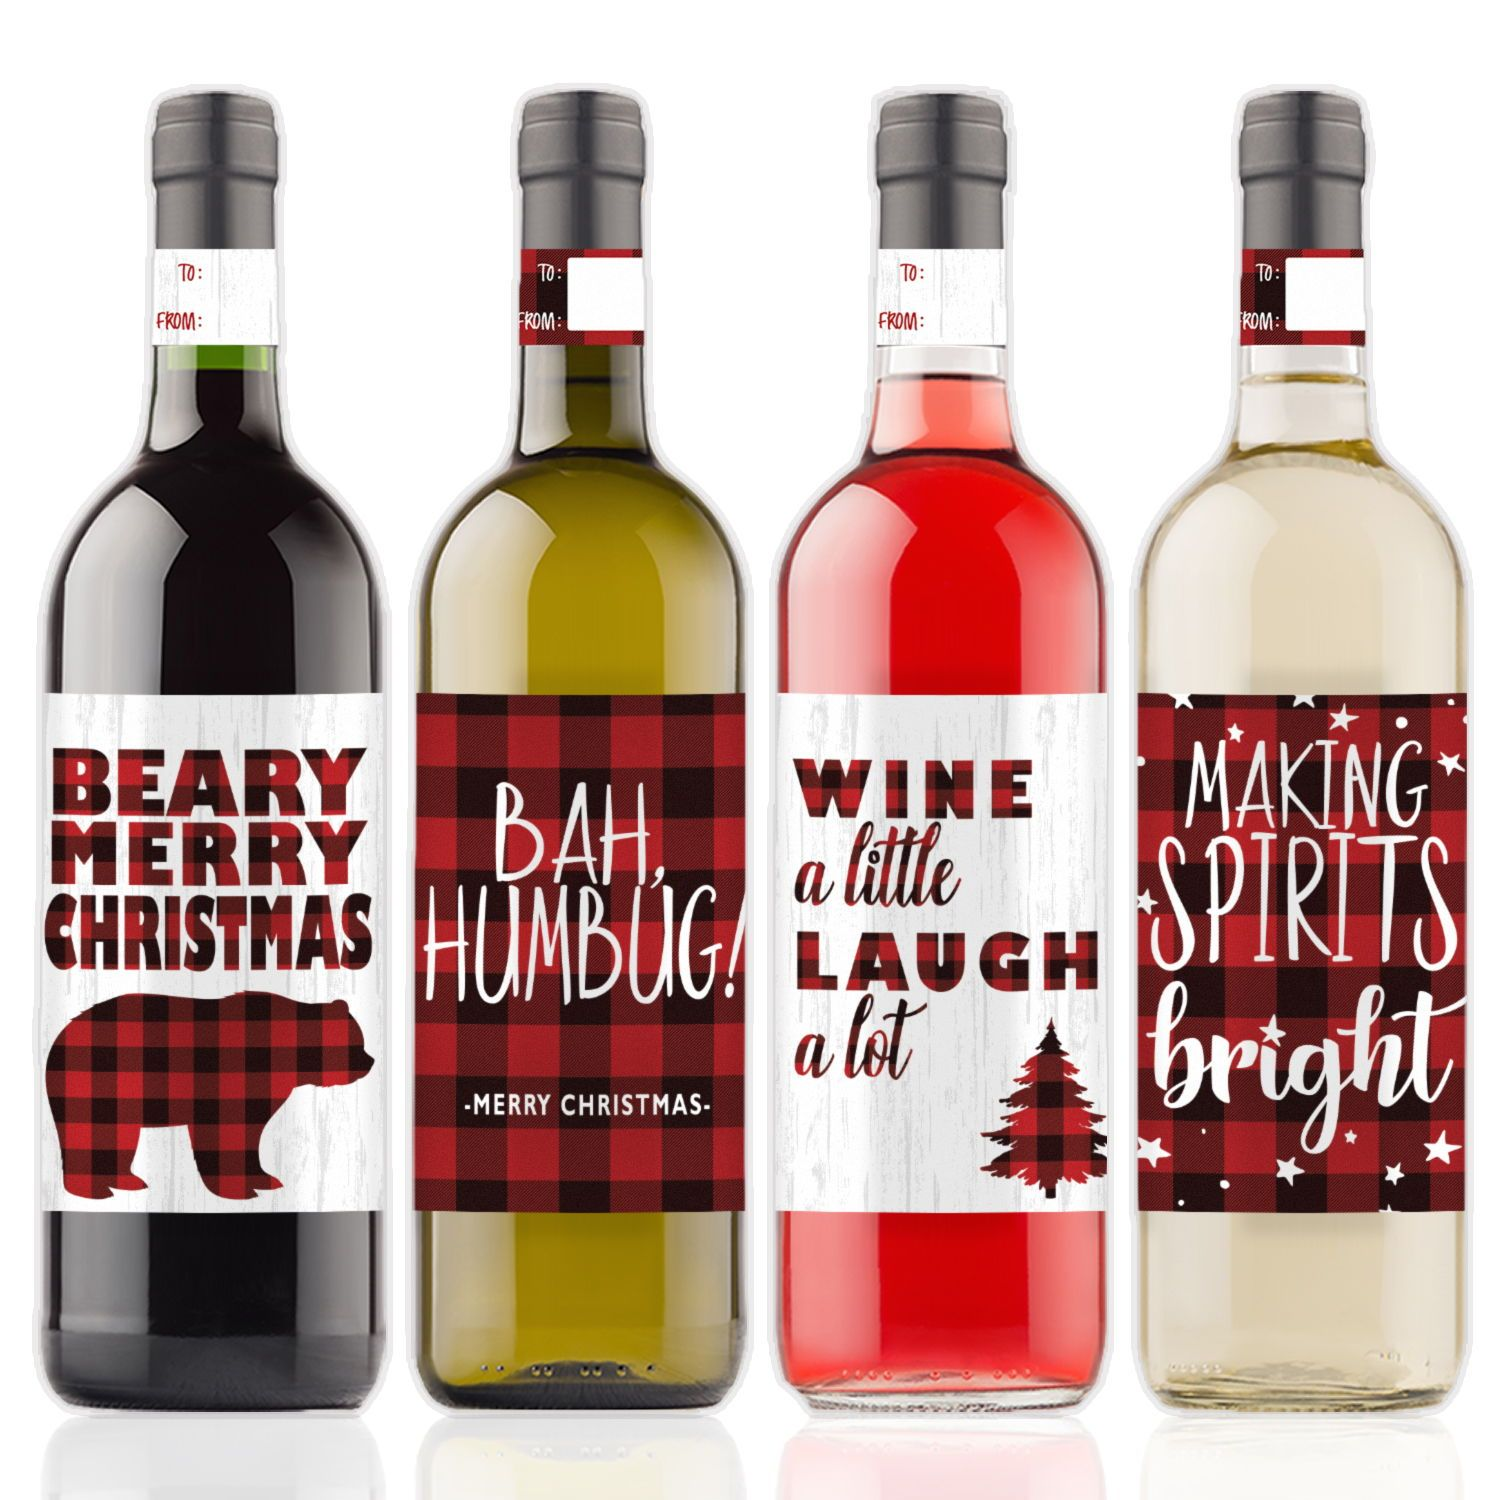 Plaid Christmas Wine Bottle Labels Make For The Perfect Holiday Party Decoration Or Chri Christmas Wine Bottle Labels Christmas Wine Bottles Wine Bottle Labels